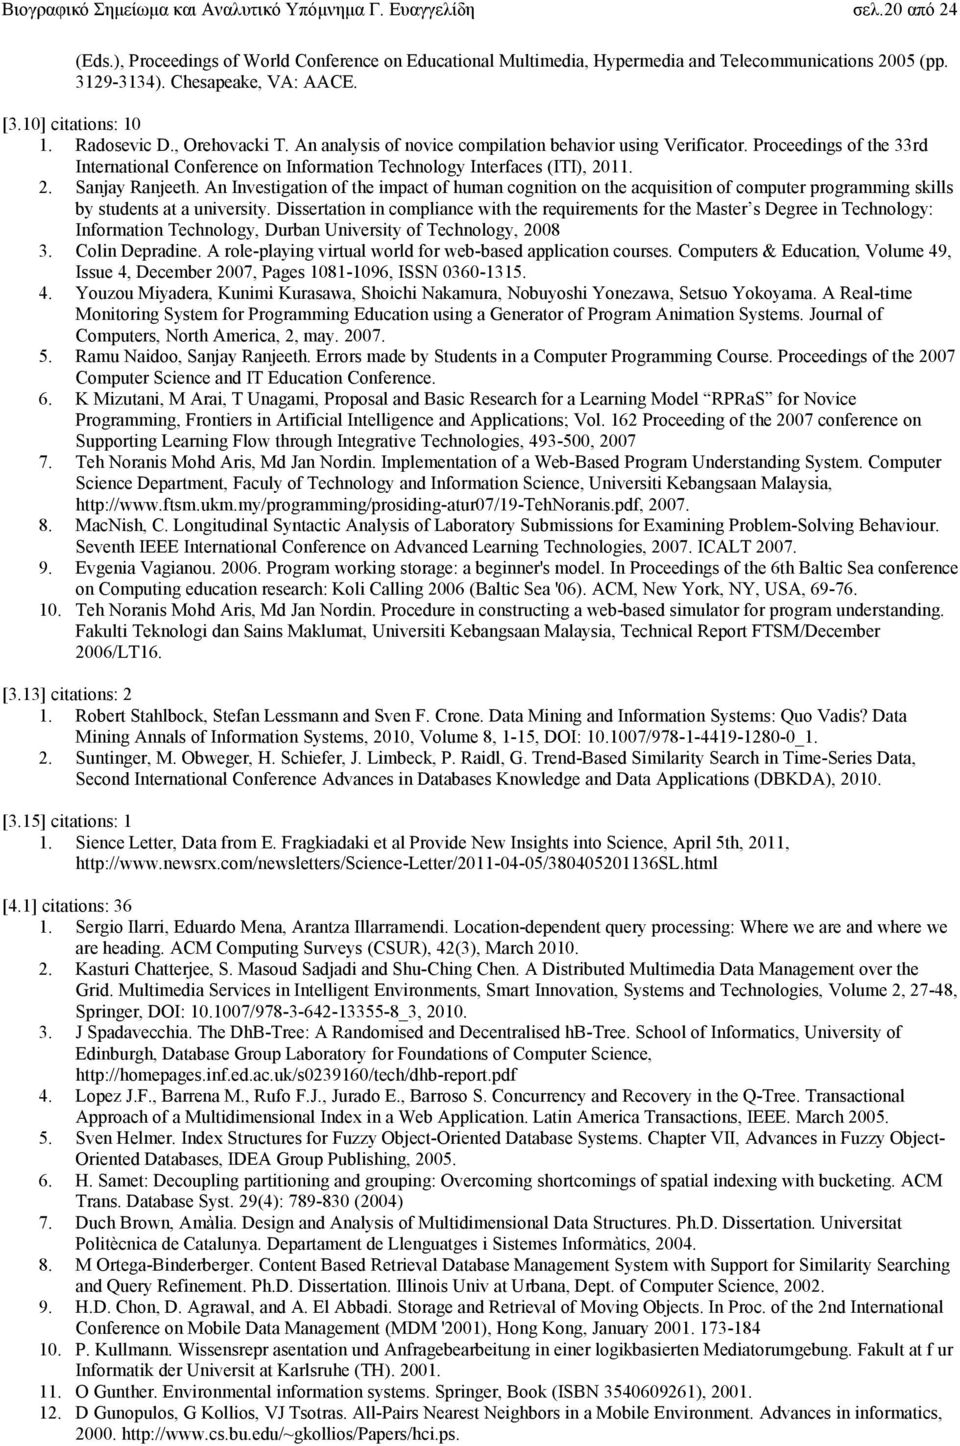 Proceedings of the 33rd International Conference on Information Technology Interfaces (ITI), 2011. 2. Sanjay Ranjeeth.